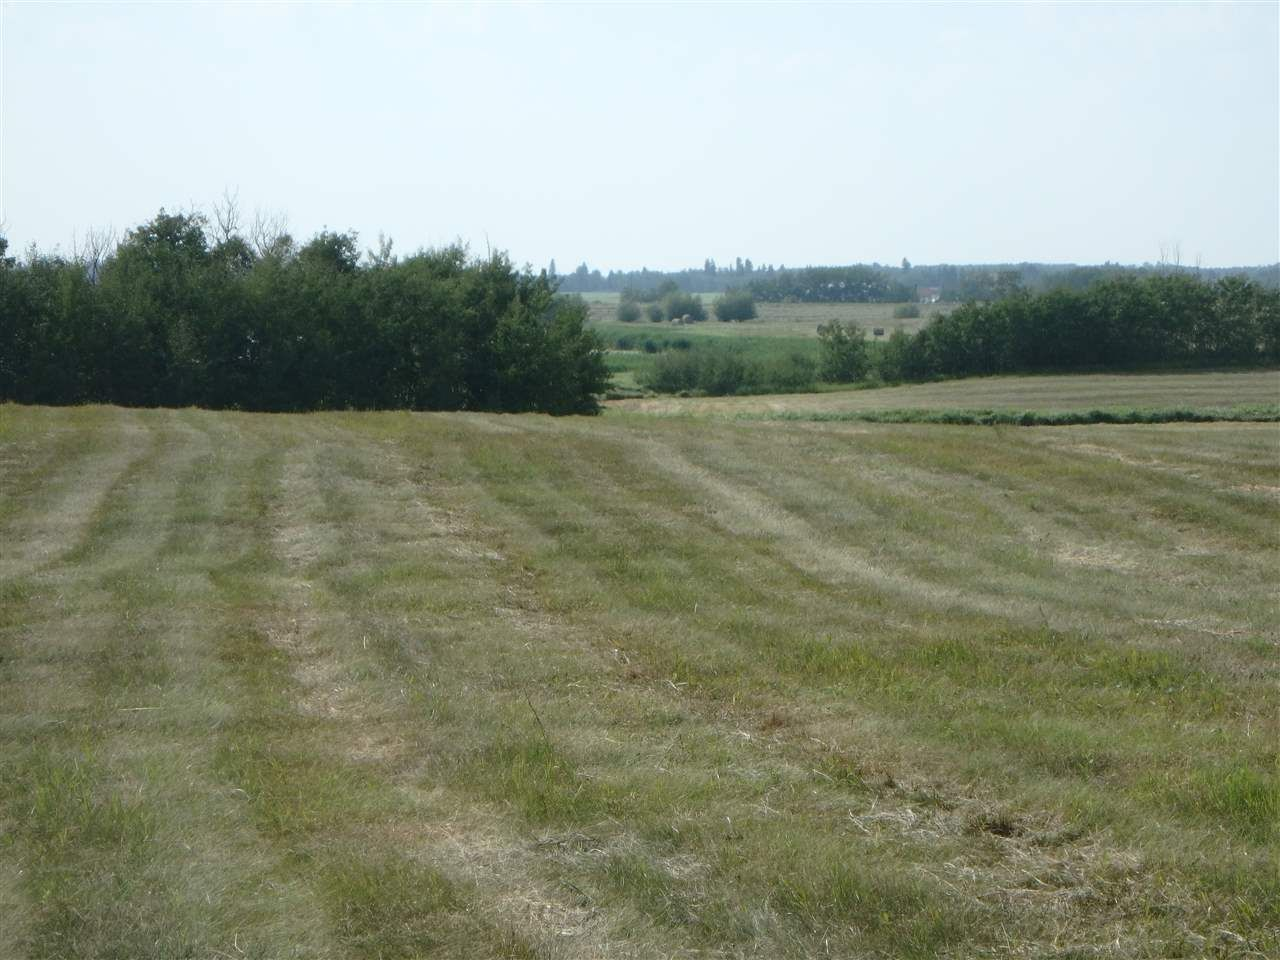 Main Photo: Hwy 21 and RR 224: Rural Leduc County Rural Land/Vacant Lot for sale : MLS®# E4212486